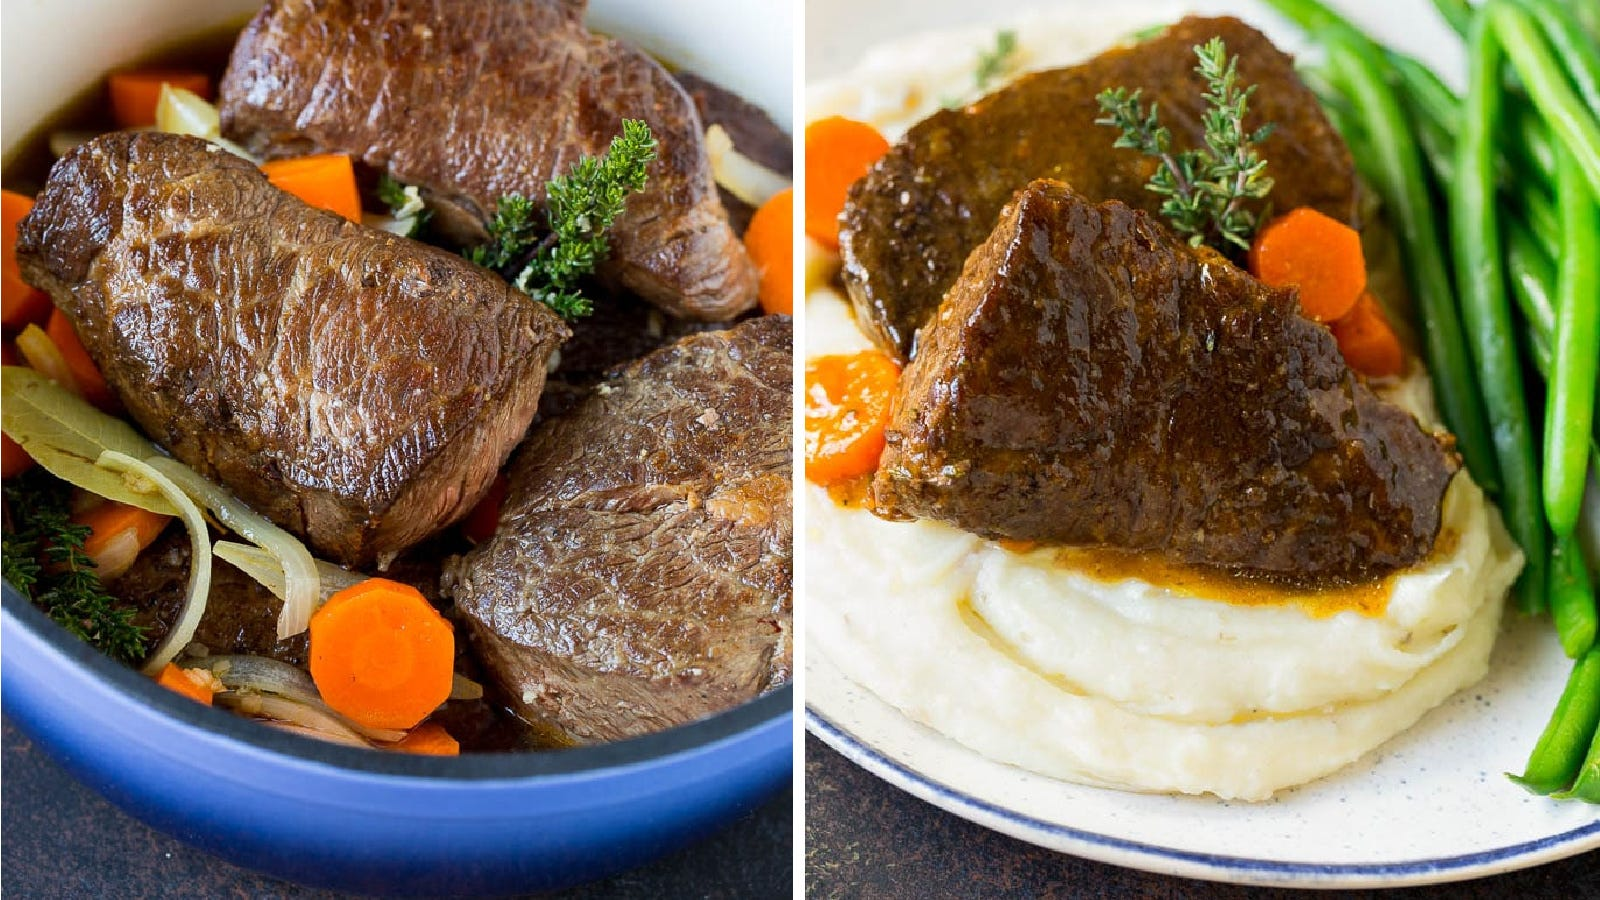 Two images of braised short ribs cooked in a blue enameled Dutch oven by Dinner at the Zoo.